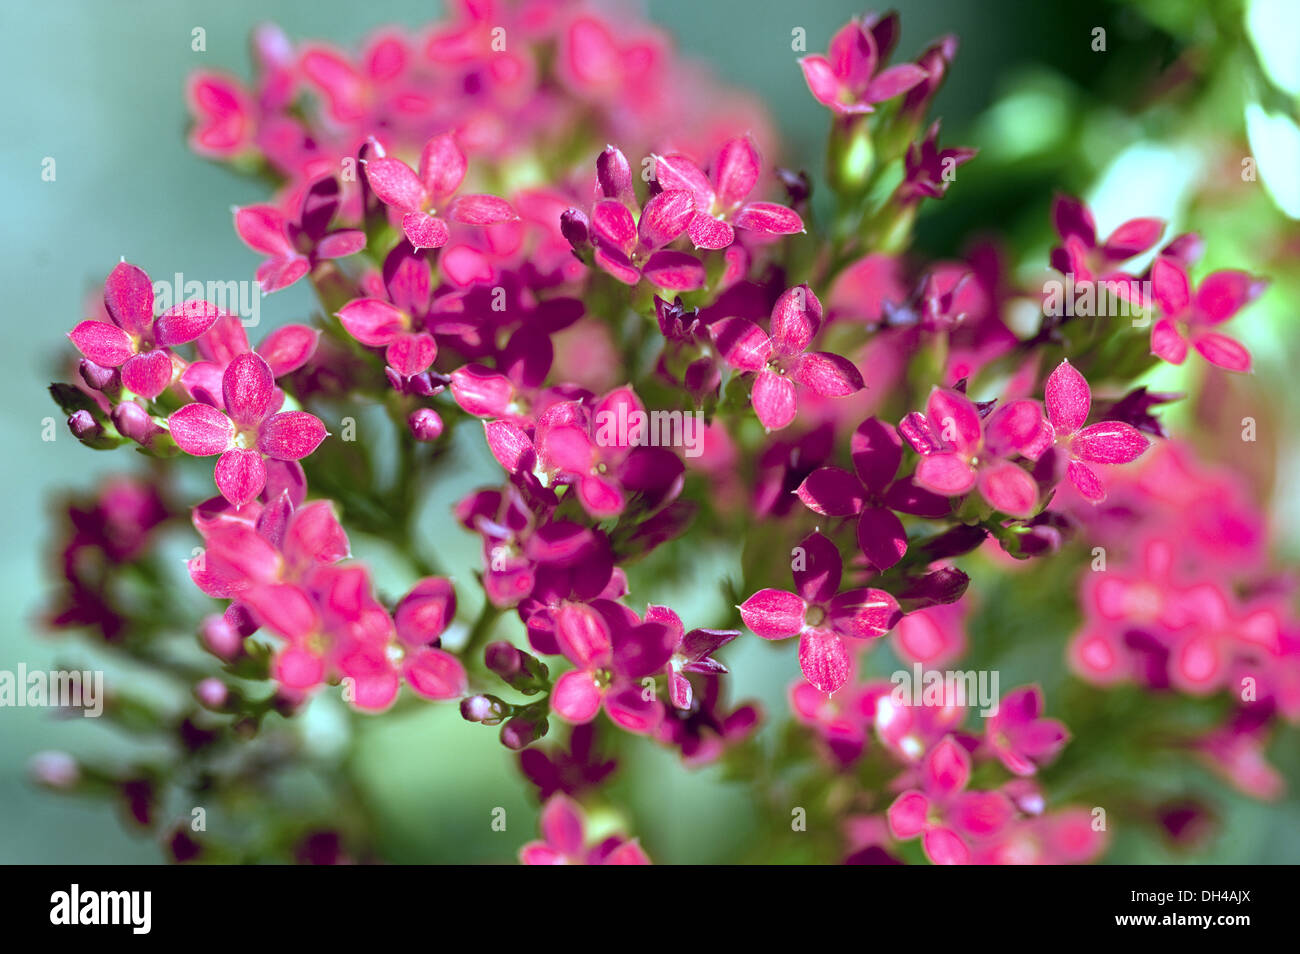 Kalanchoes tropical plant red pink flowers maharashtra india asia kalanchoes tropical plant red pink flowers maharashtra india asia mightylinksfo